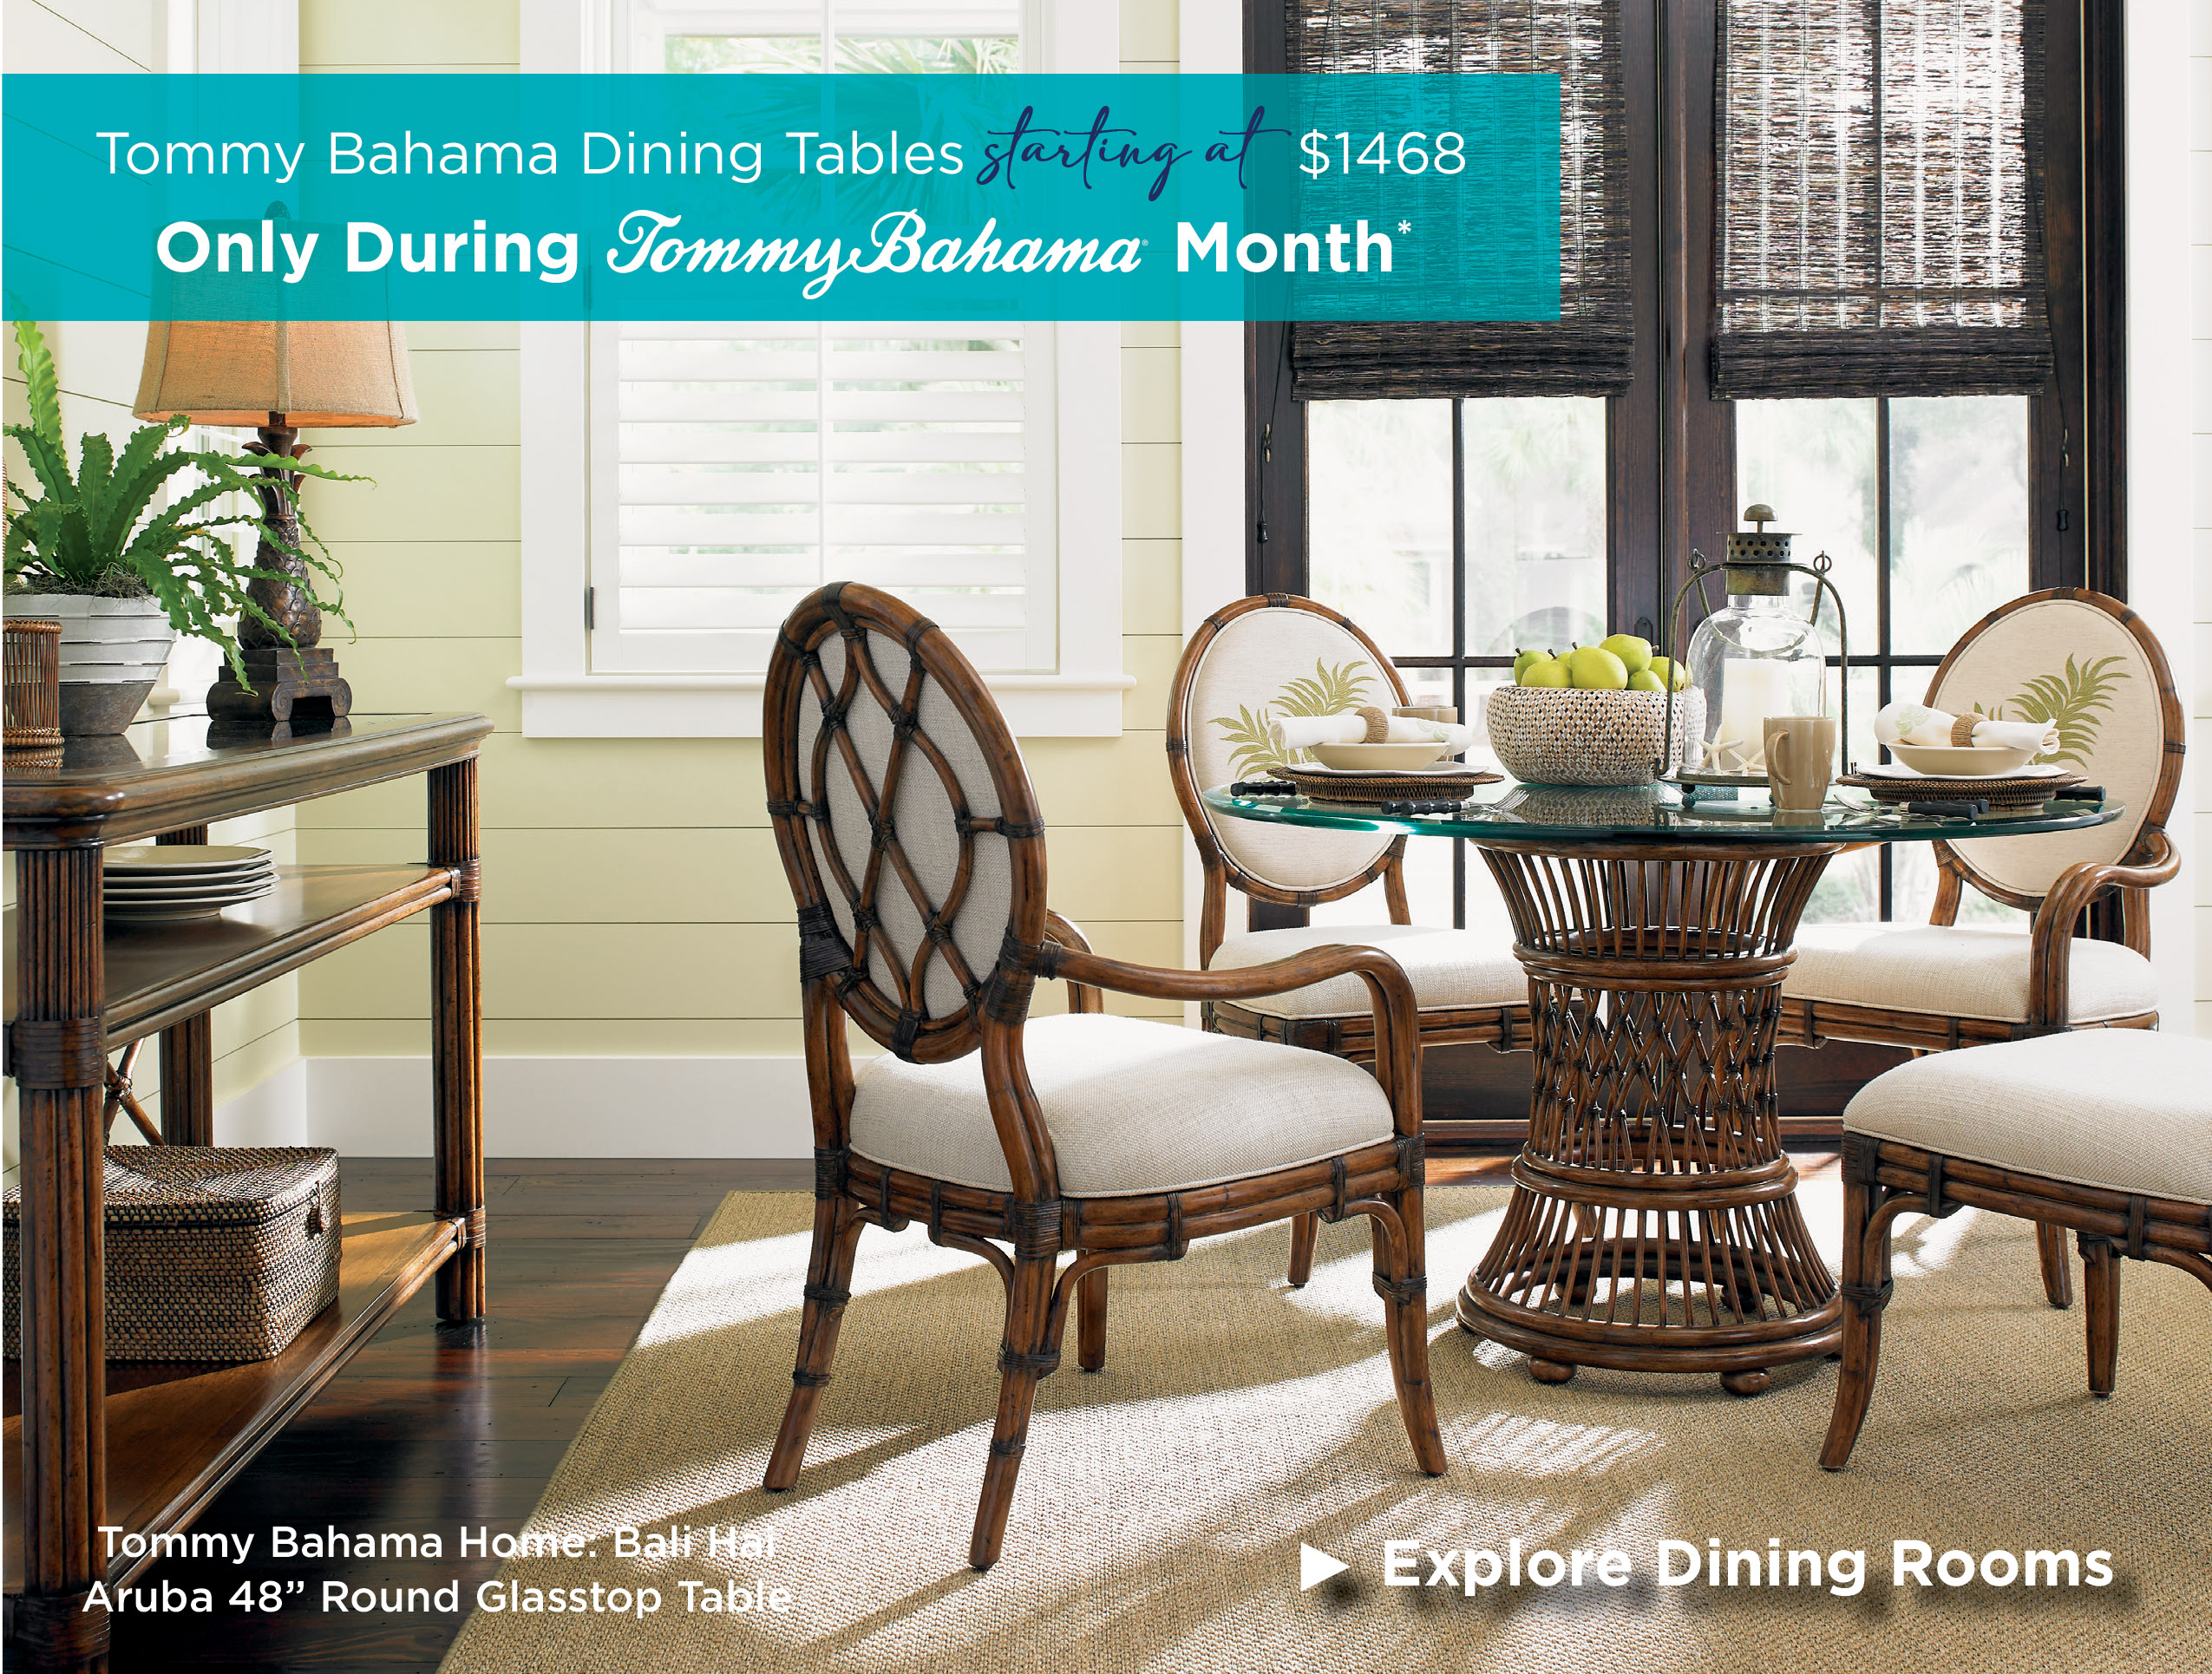 Save 50% on Dining during Tommy Bahama Month